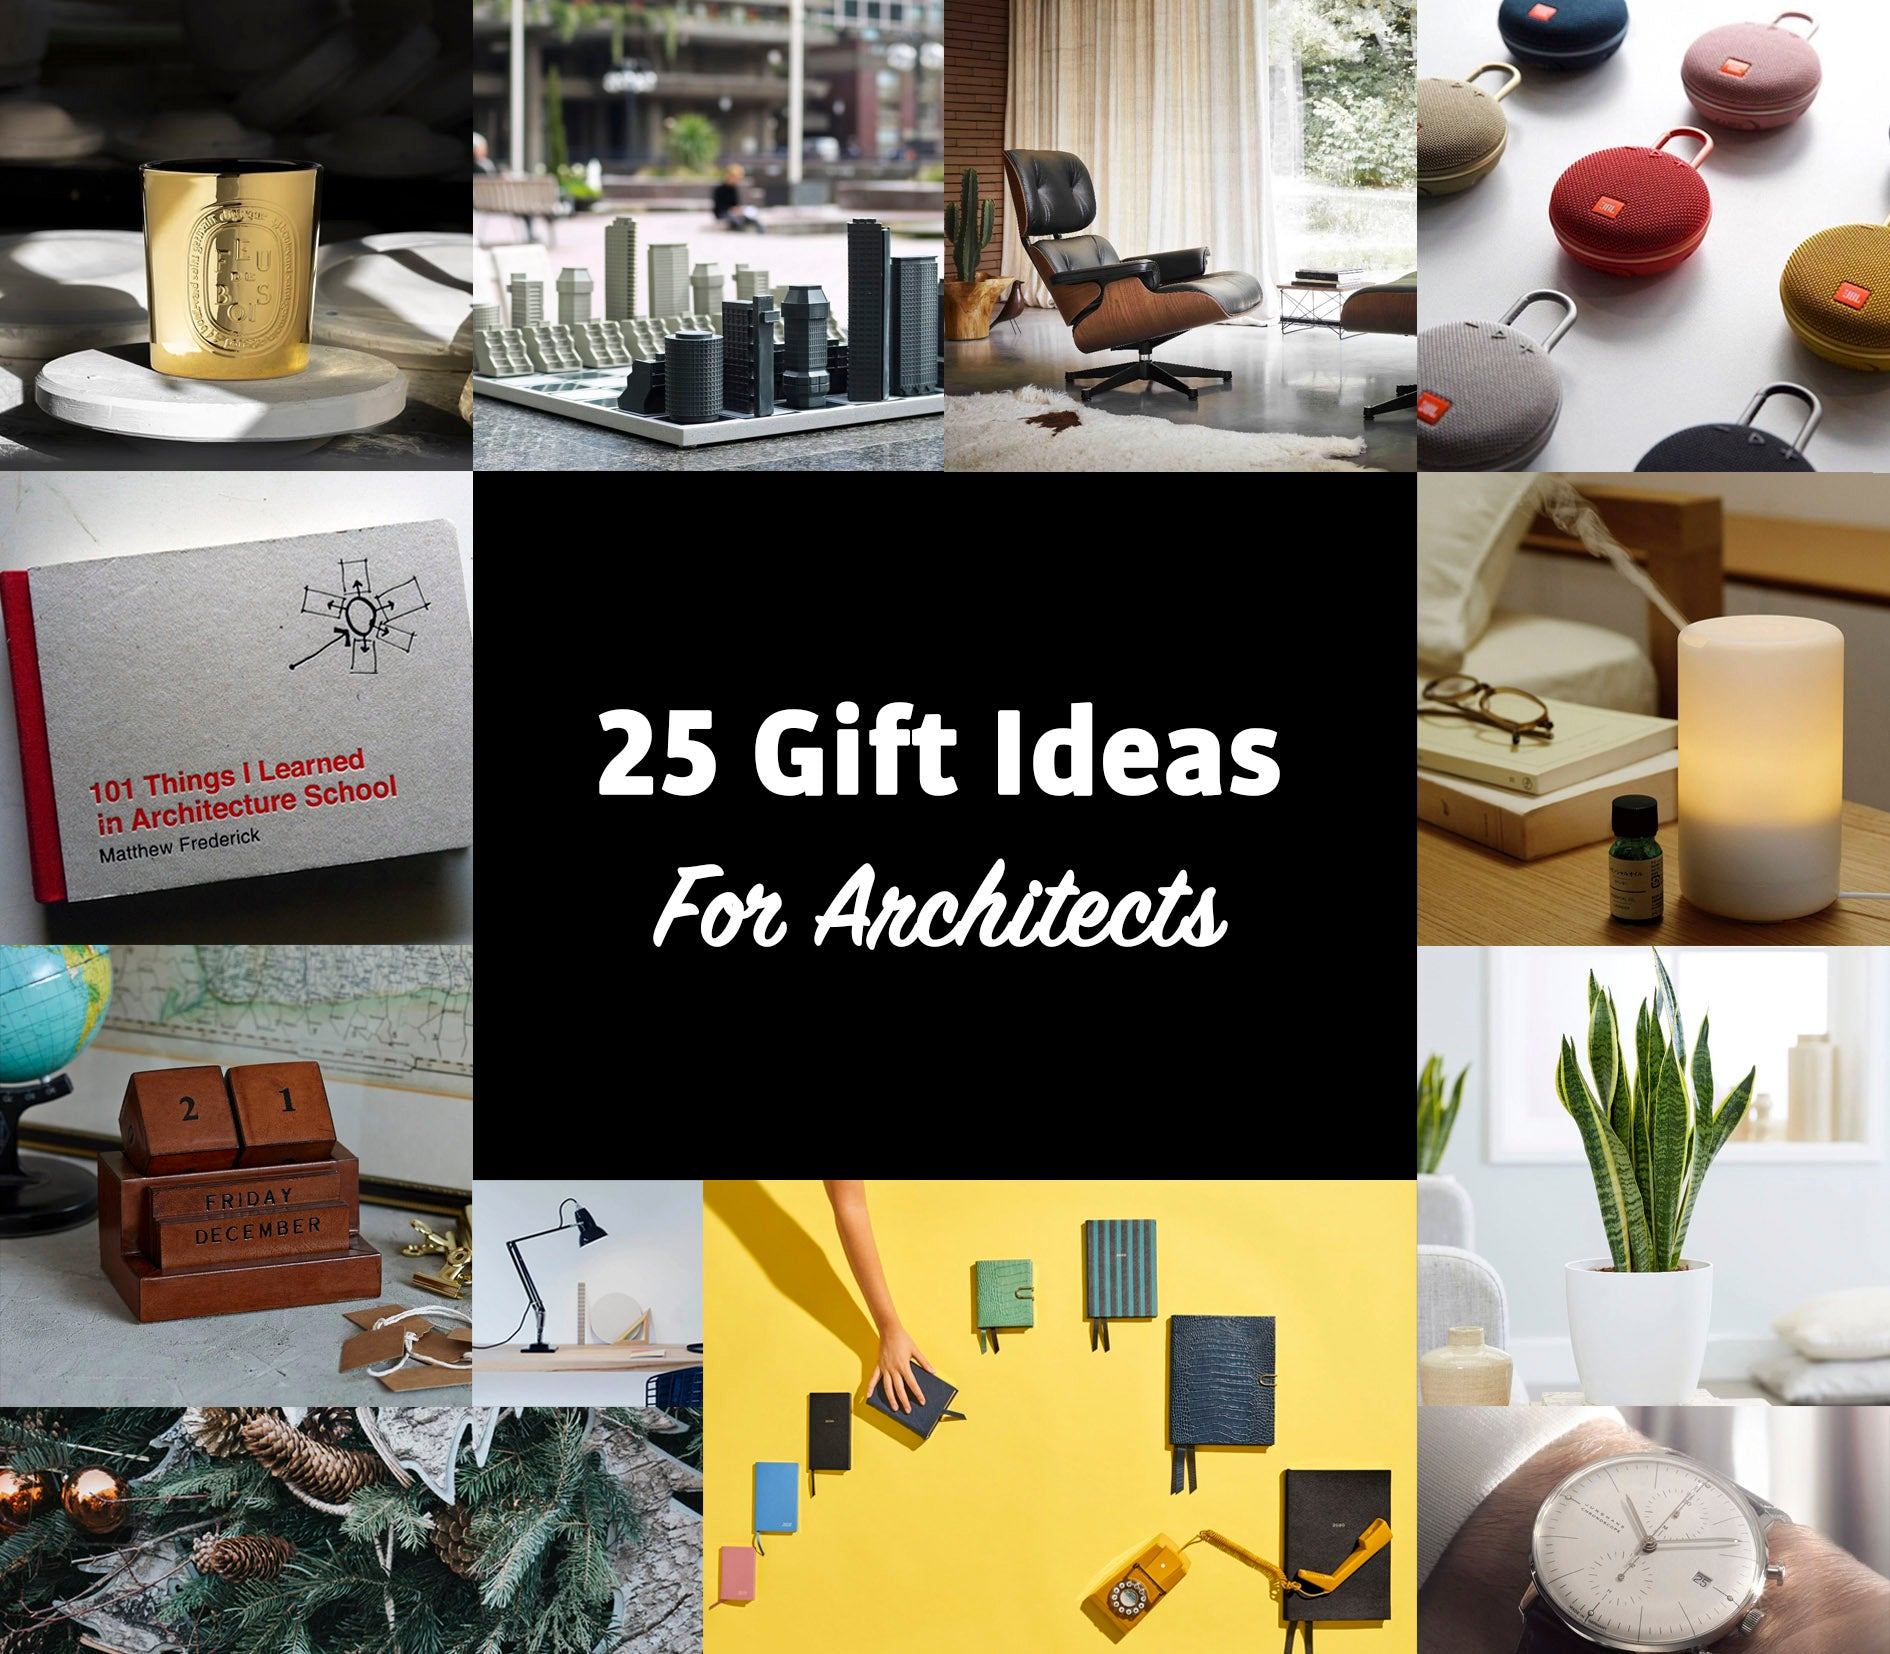 25 Gift Ideas For Architects